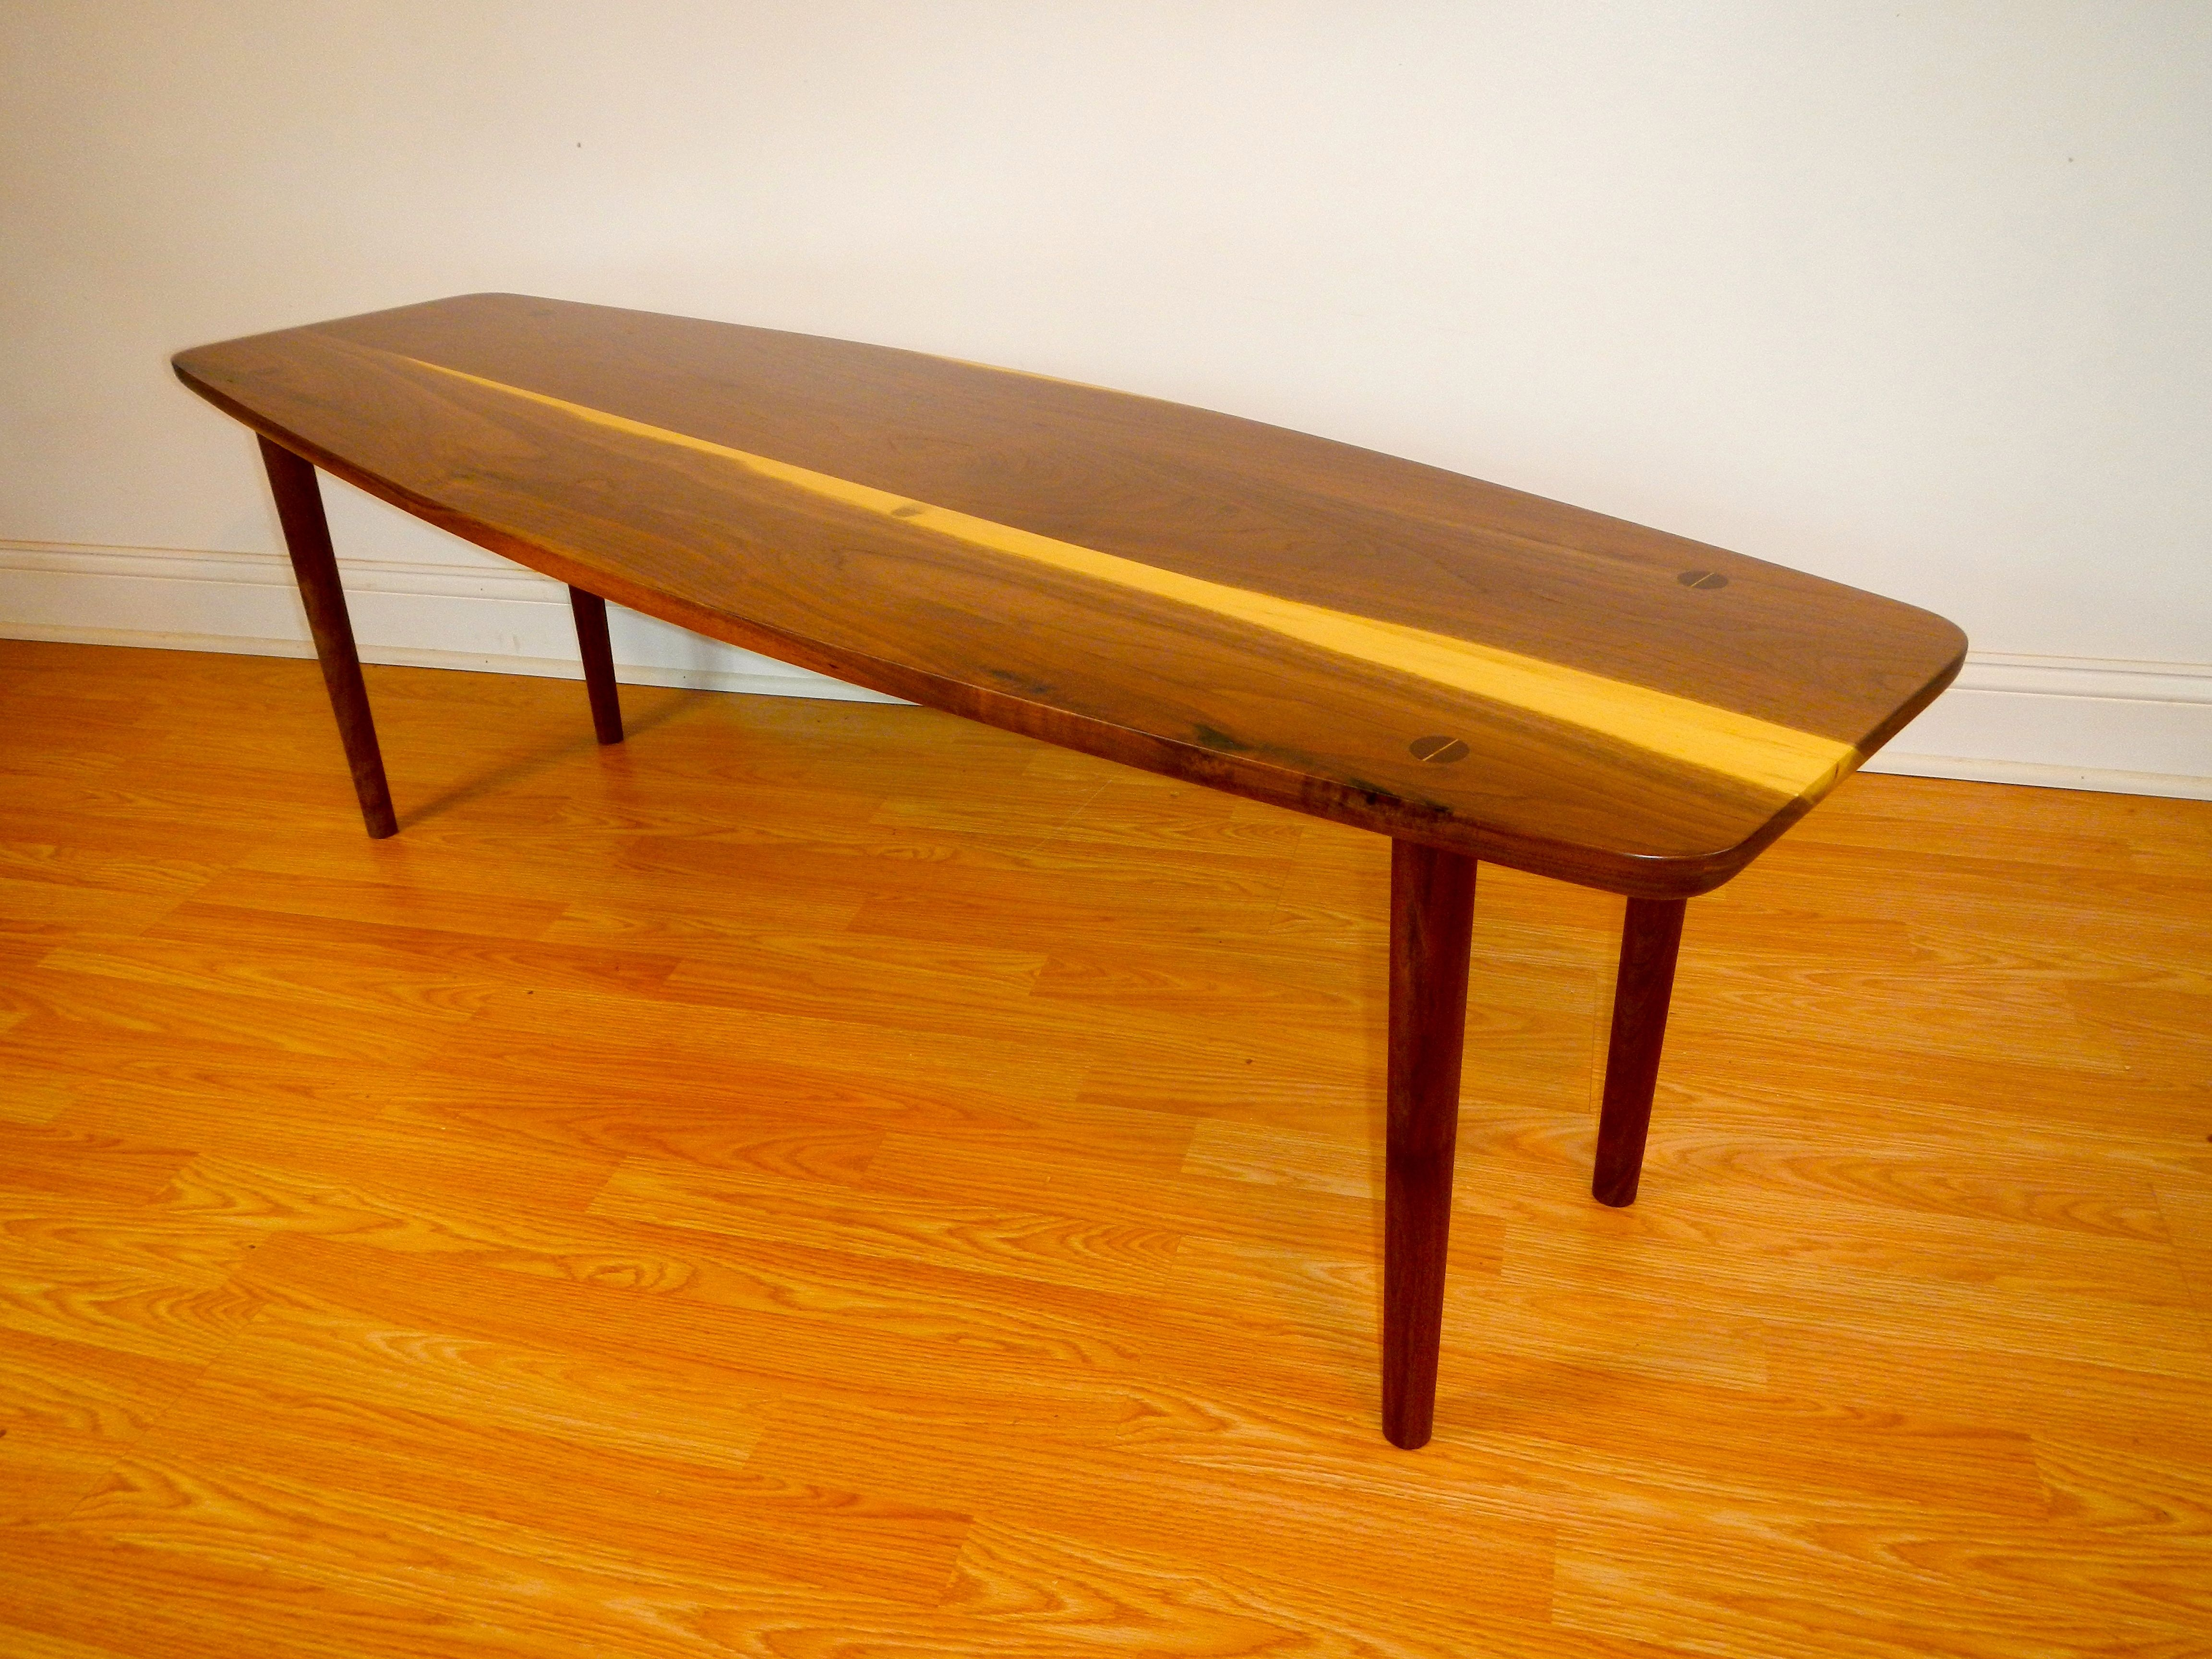 Hand Made Mid Century Modern Style Surfboard Table By Don Yacovella